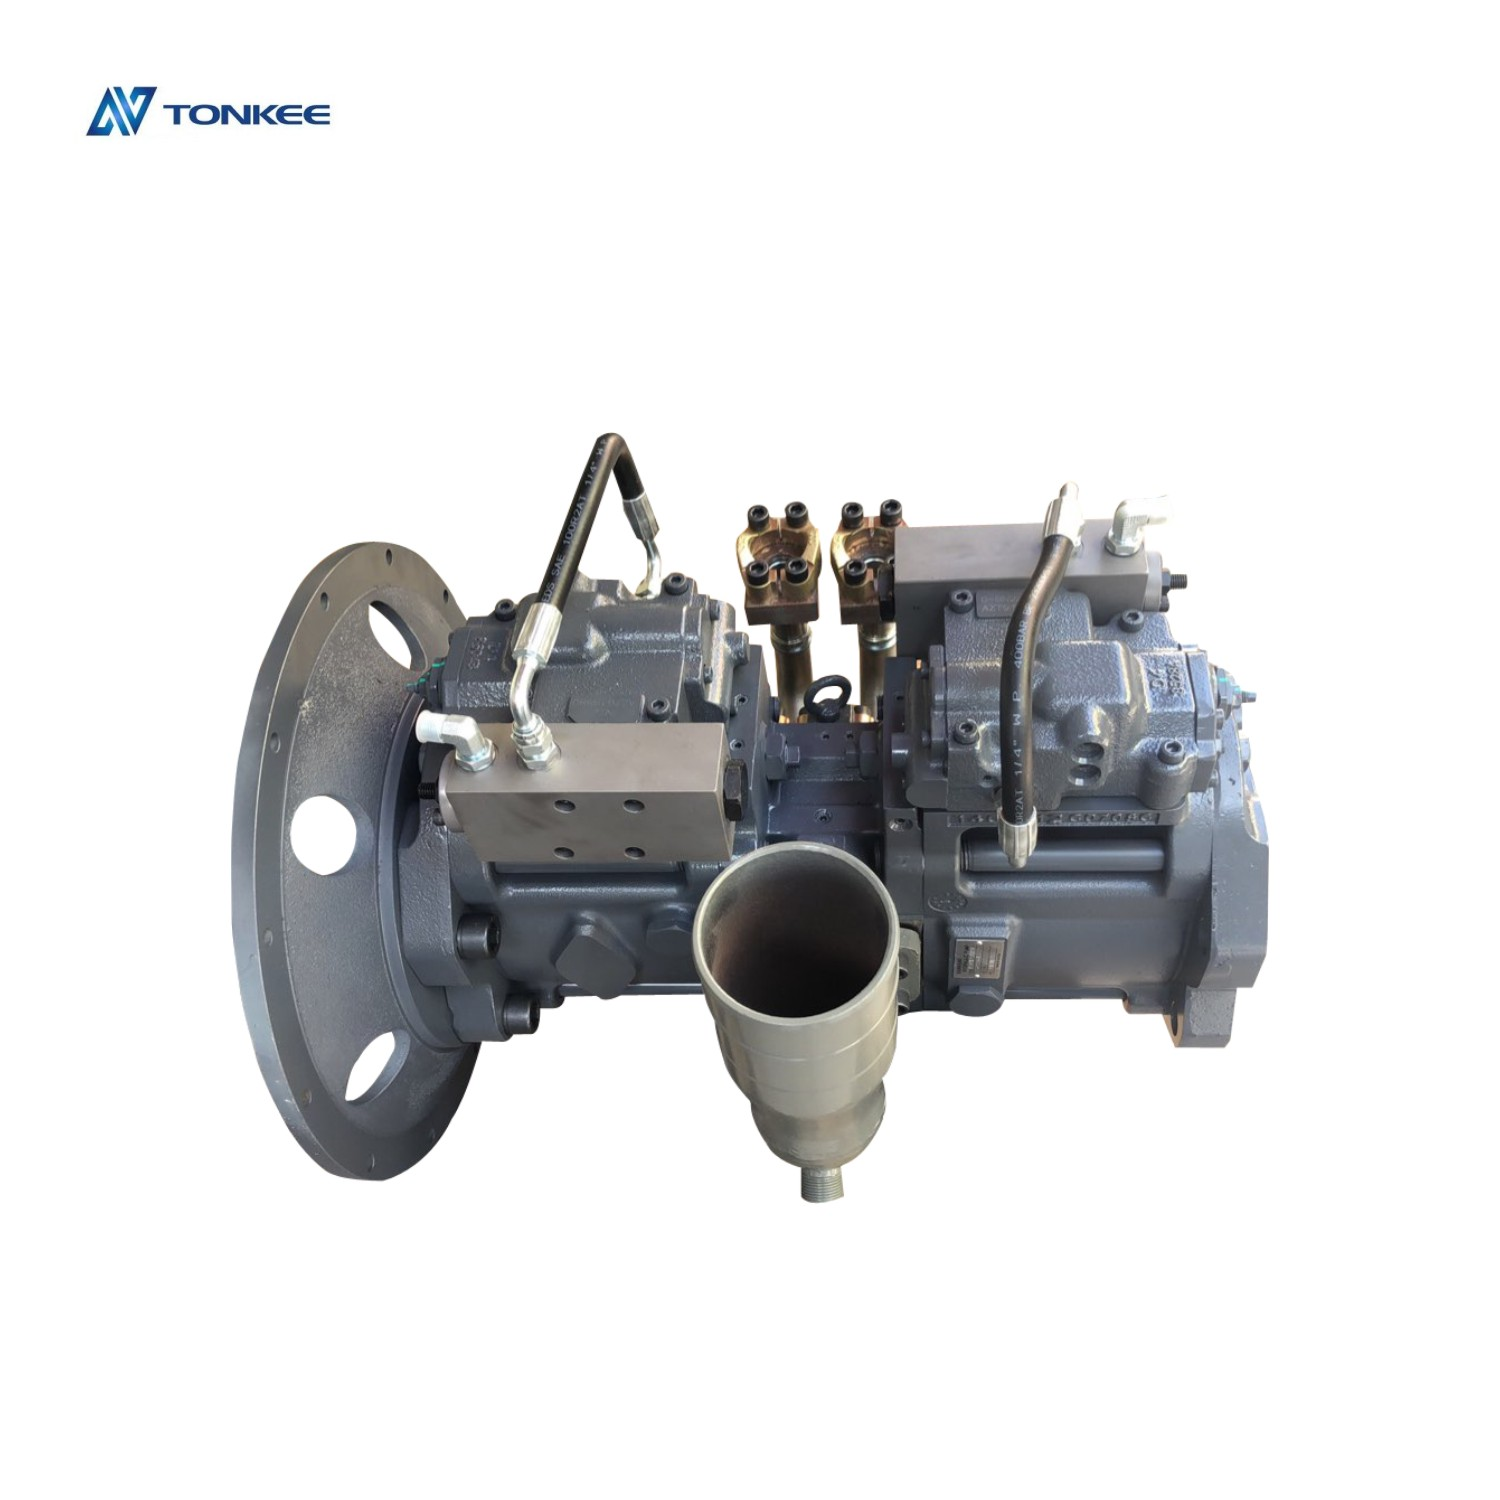 708-2L-00300 hydraulic main pump K3V112DT convert to PC200-7 hydraulic pump replace HPV95 modified piston pump for KOMATSU excavation